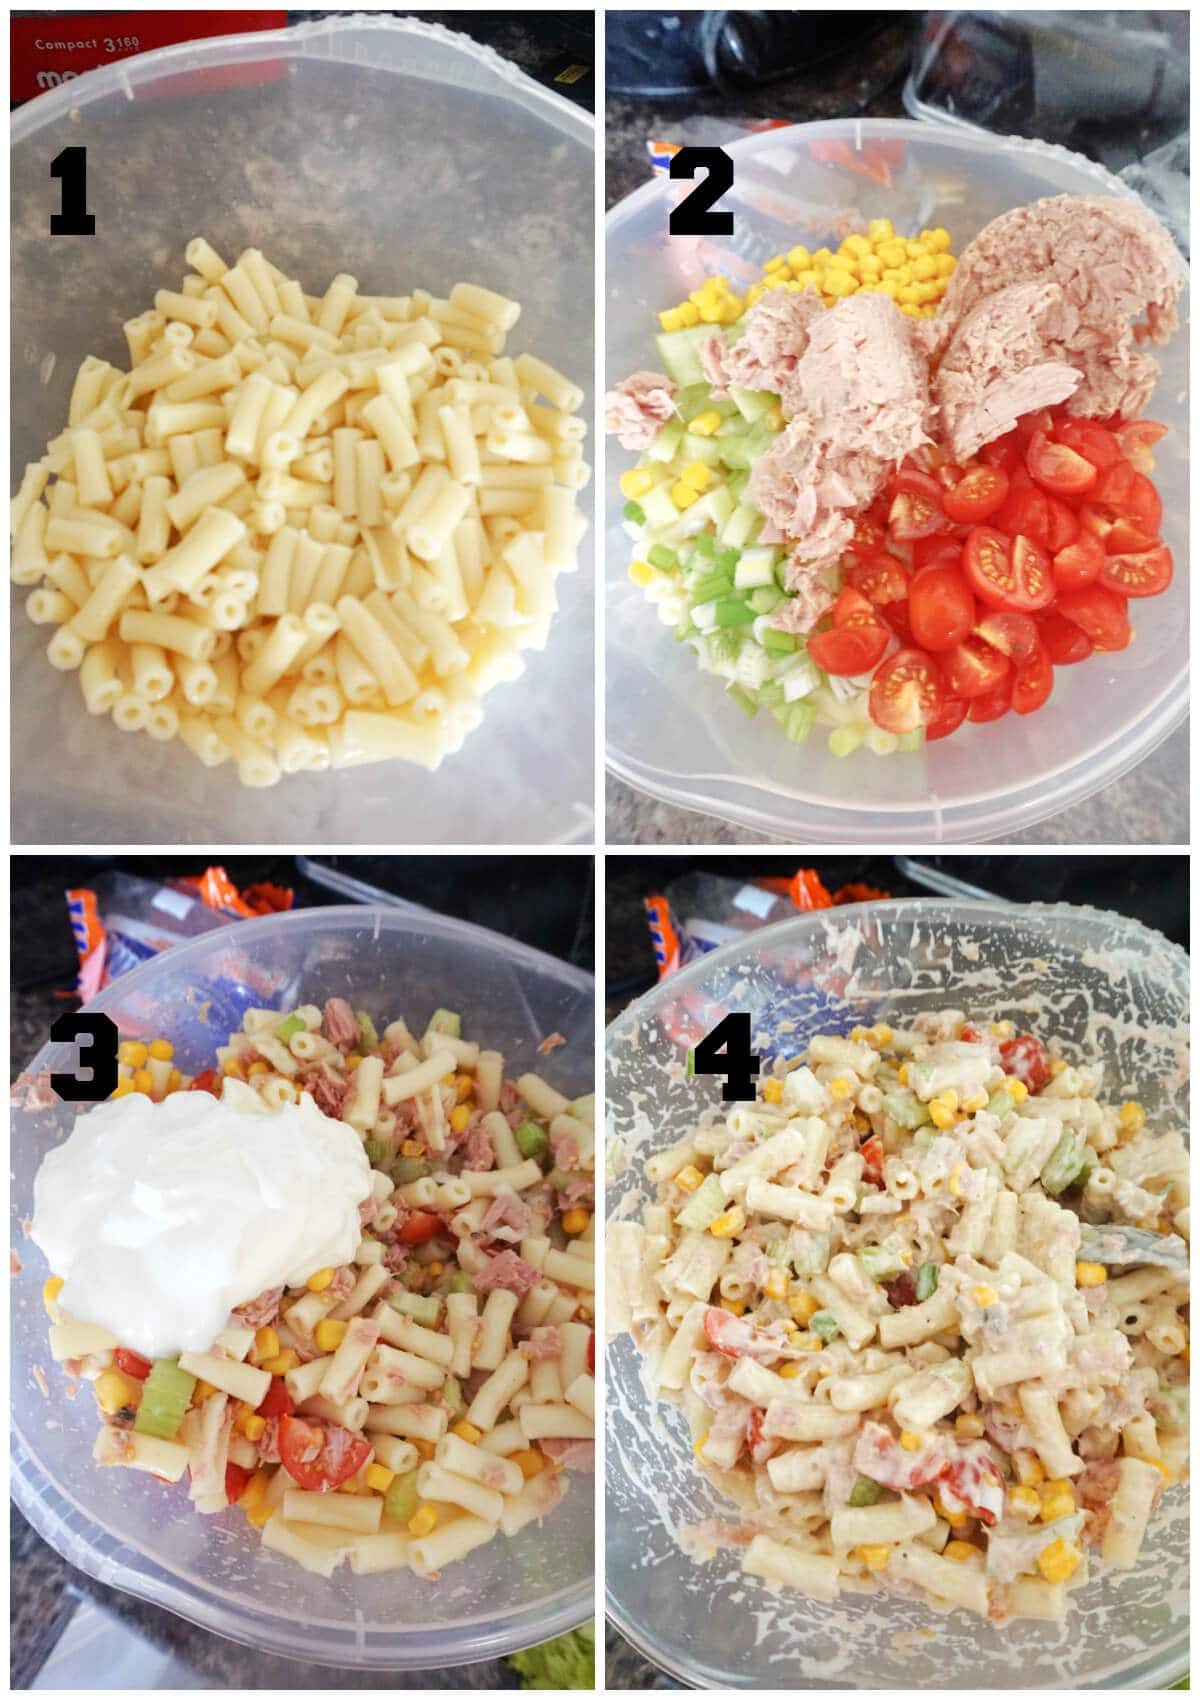 Collage of 4 photos to show how to make tuna pasta salad